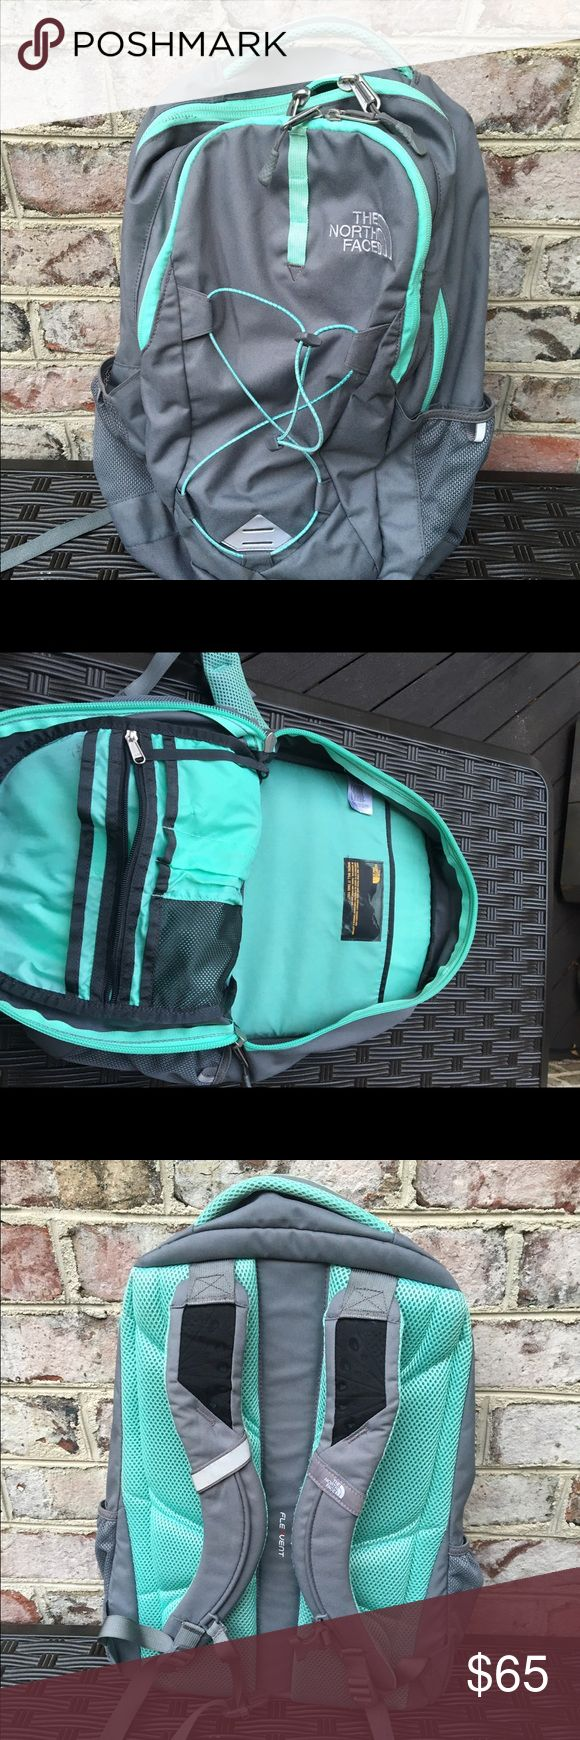 North Face Jester Bookbag This practically brand new book bag has been used but shows very little signs of use. The colors are grey and a teal blue accent. The book bag is perfect for school, college, holds laptops, books, etc! The North Face Other